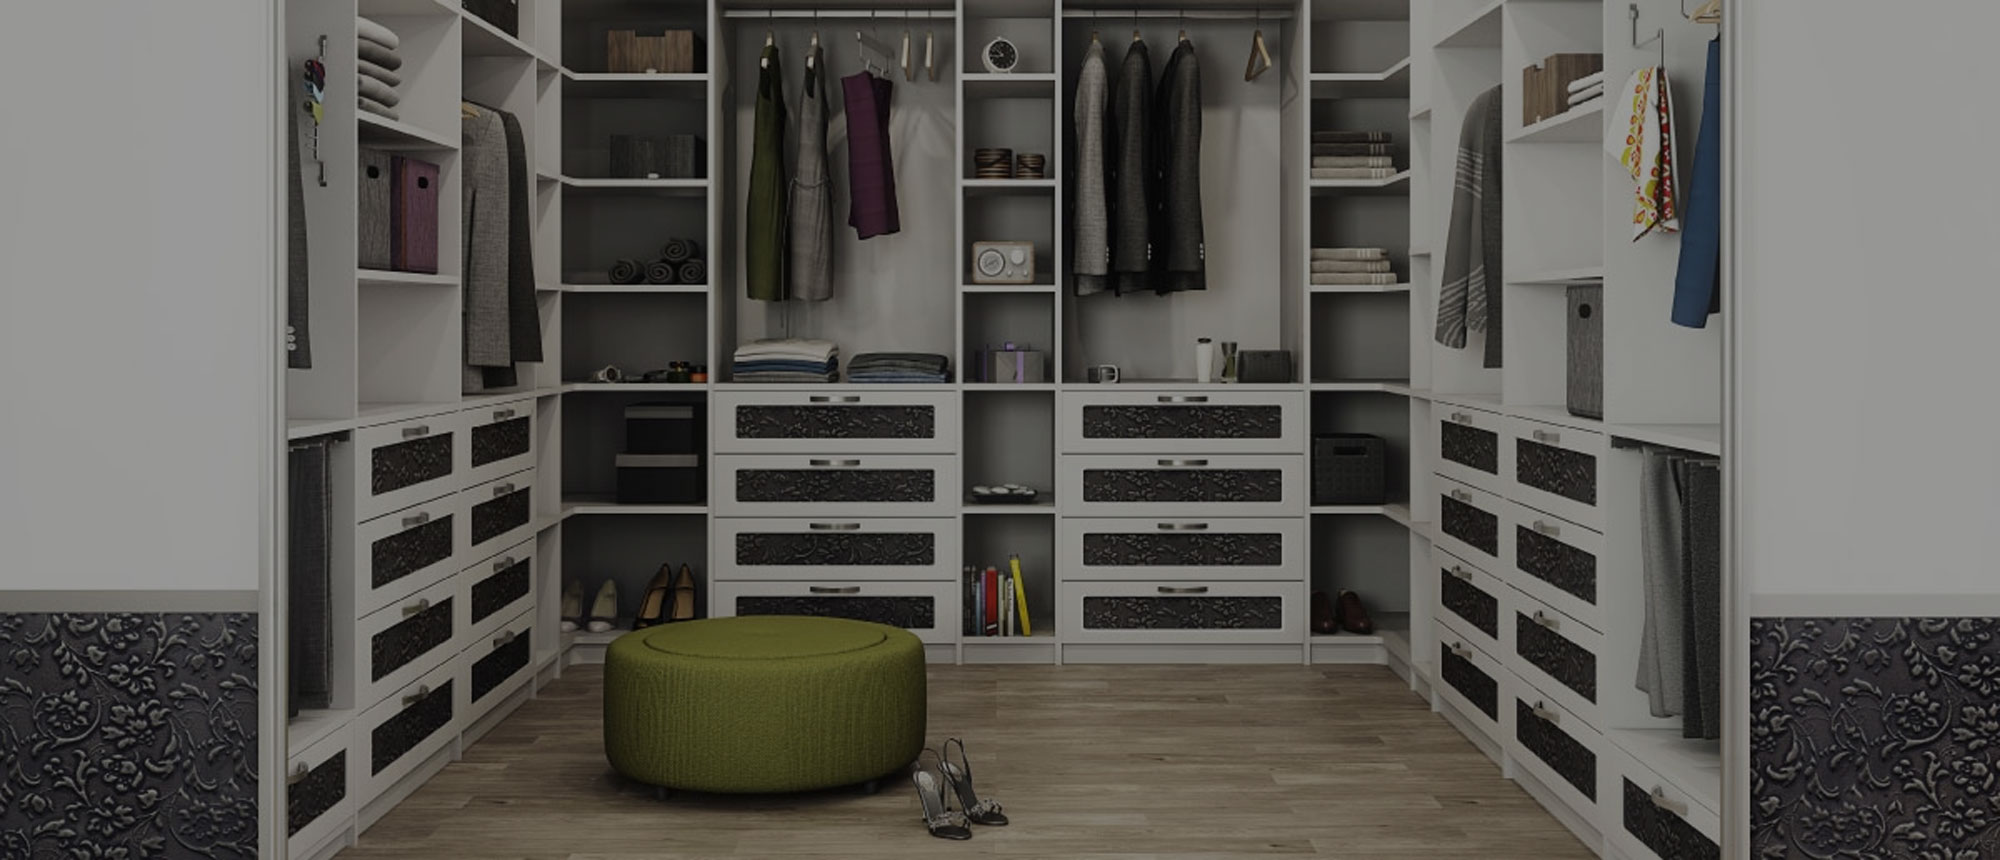 Photo Walk-in Garde-robe Walk In Closet Skreddersydde Løsninger Garderobe Mannen